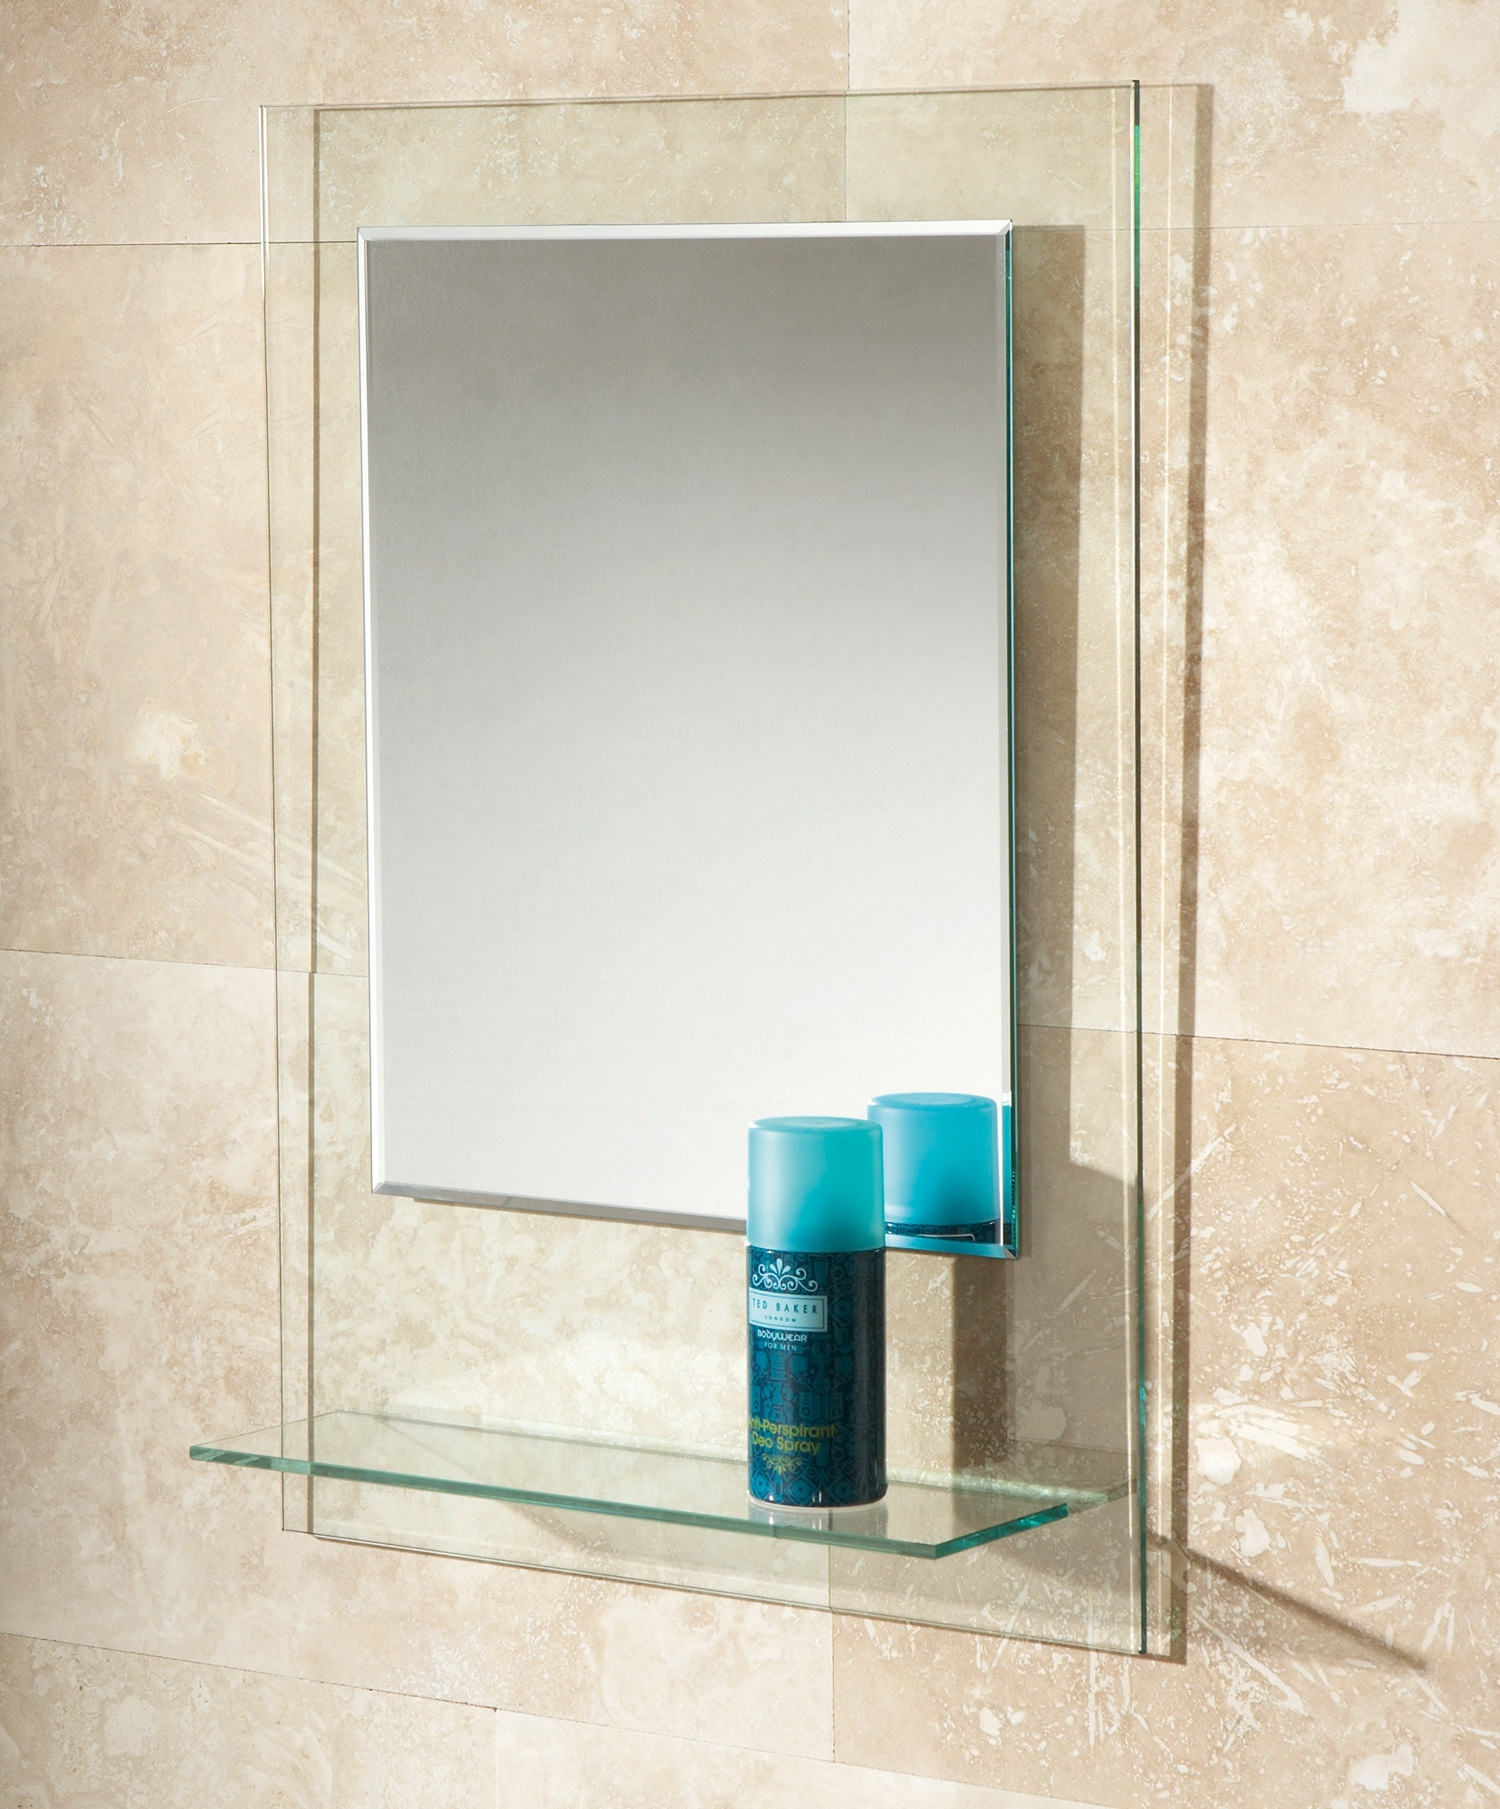 Hib Fuzion Bevelled Edge Mirror With Glass Shelf 72300100 Regarding Bevelled Edge Bathroom Mirror (Image 8 of 15)